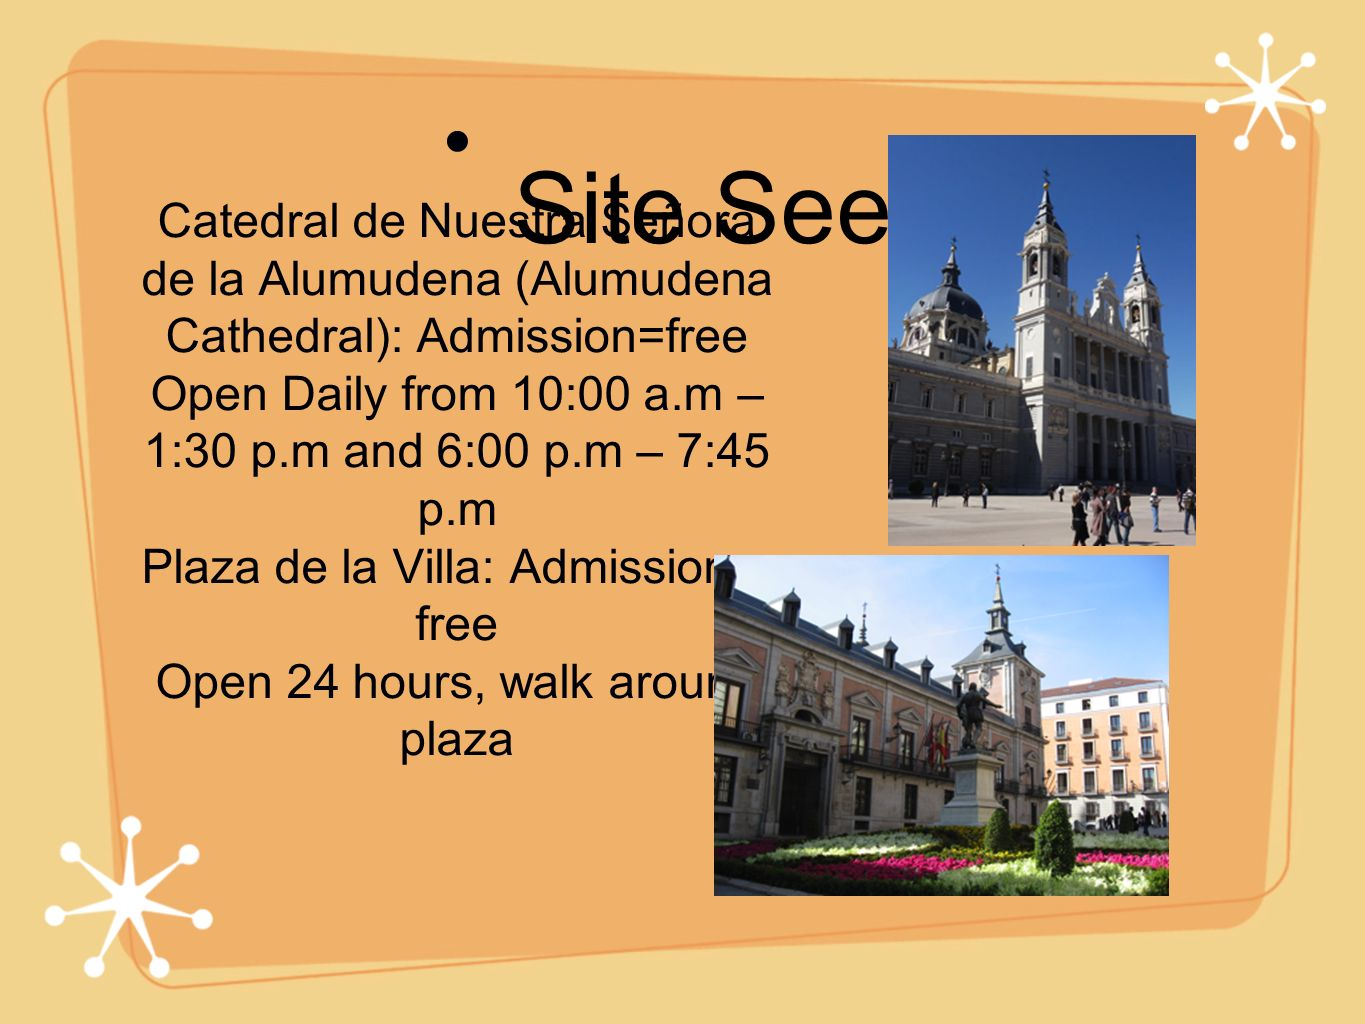 Catedral de Nuestra Señora de la Alumudena (Alumudena Cathedral): Admission=free Open Daily from 10:00 a.m – 1:30 p.m and 6:00 p.m – 7:45 p.m Plaza de la Villa: Admission = free Open 24 hours, walk around plaza Site Seeing: